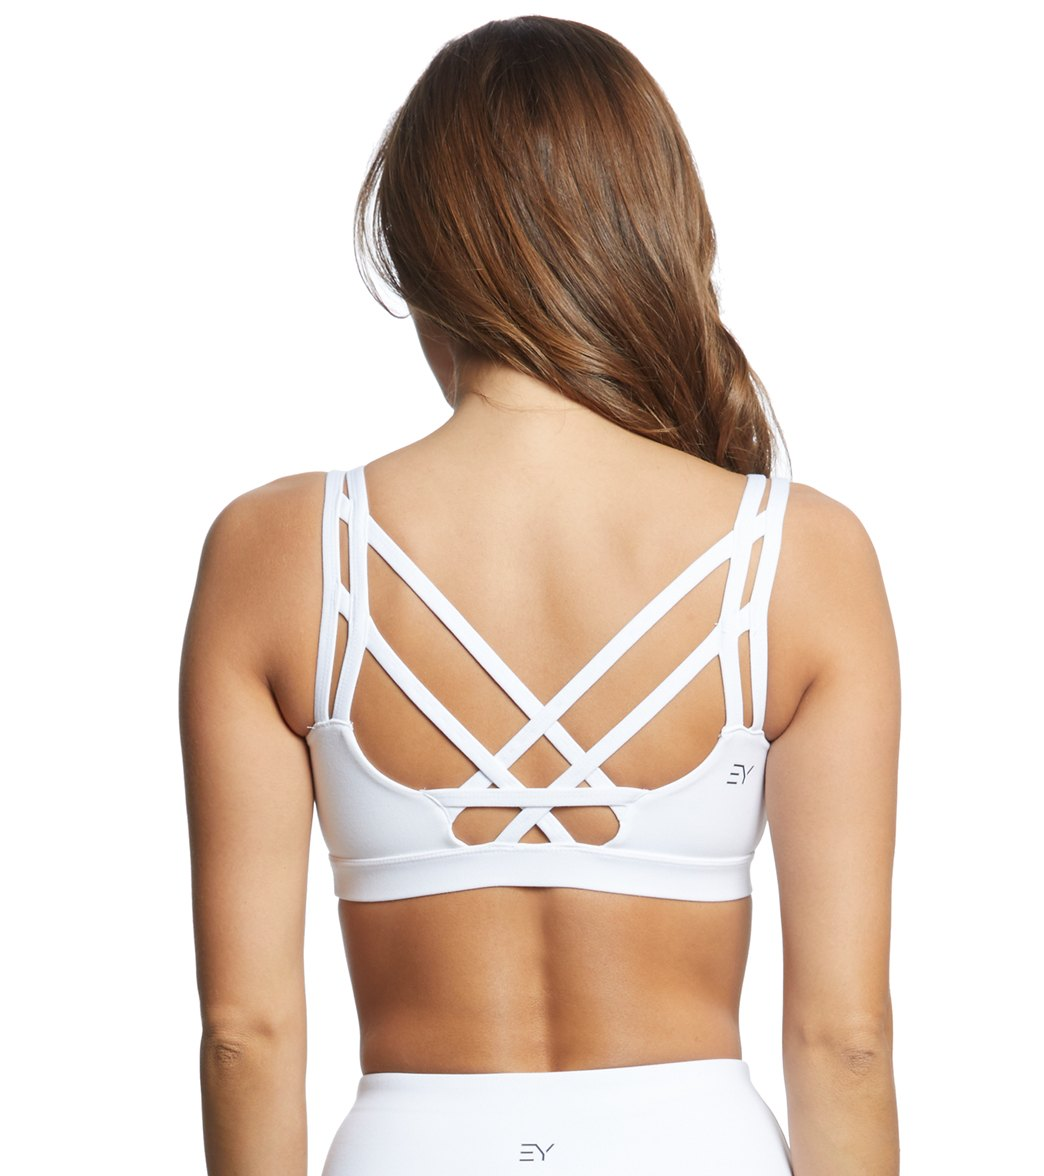 a1cde8fb9567 Everyday Yoga Radiant Strappy Back Sports Bra at YogaOutlet.com